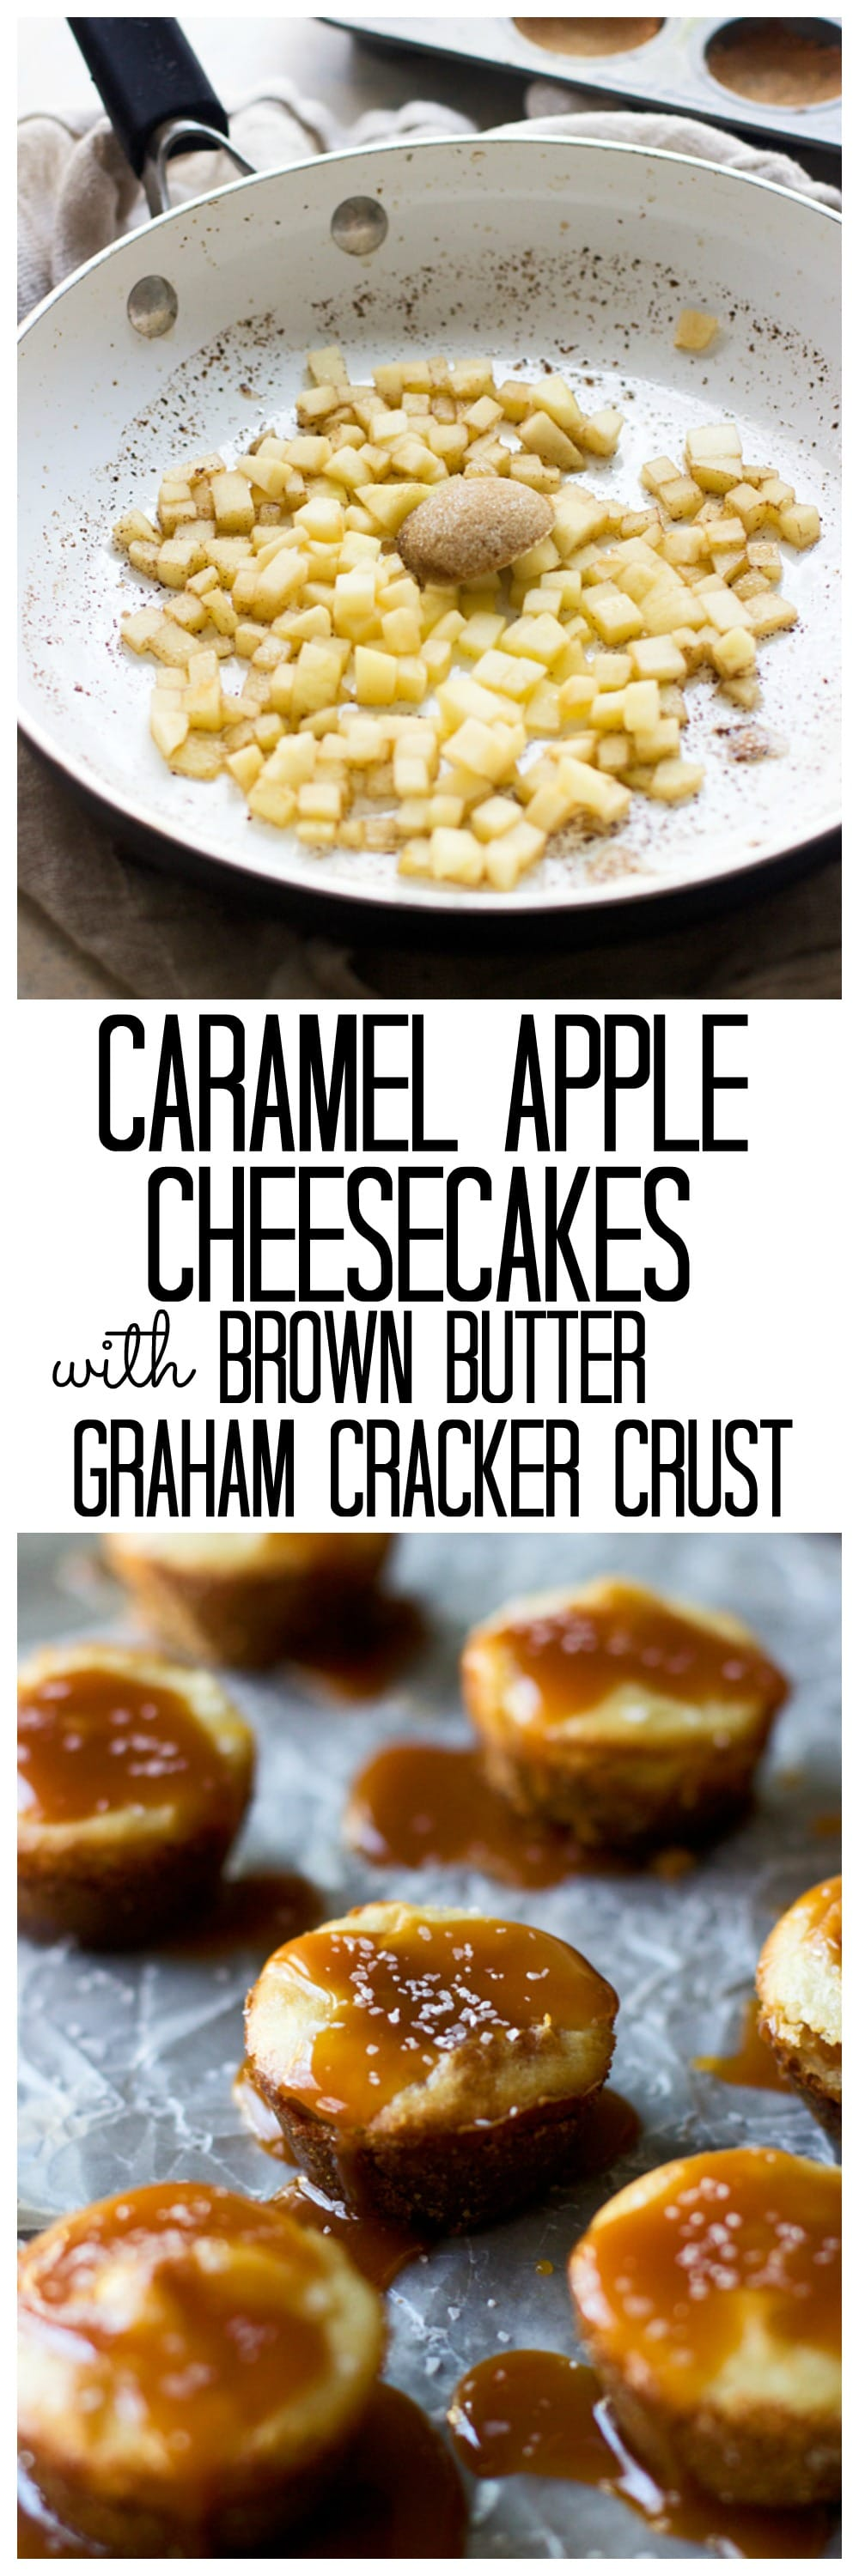 Mini Caramel Apple Cheesecakes with Brown Butter Graham Cracker Crust